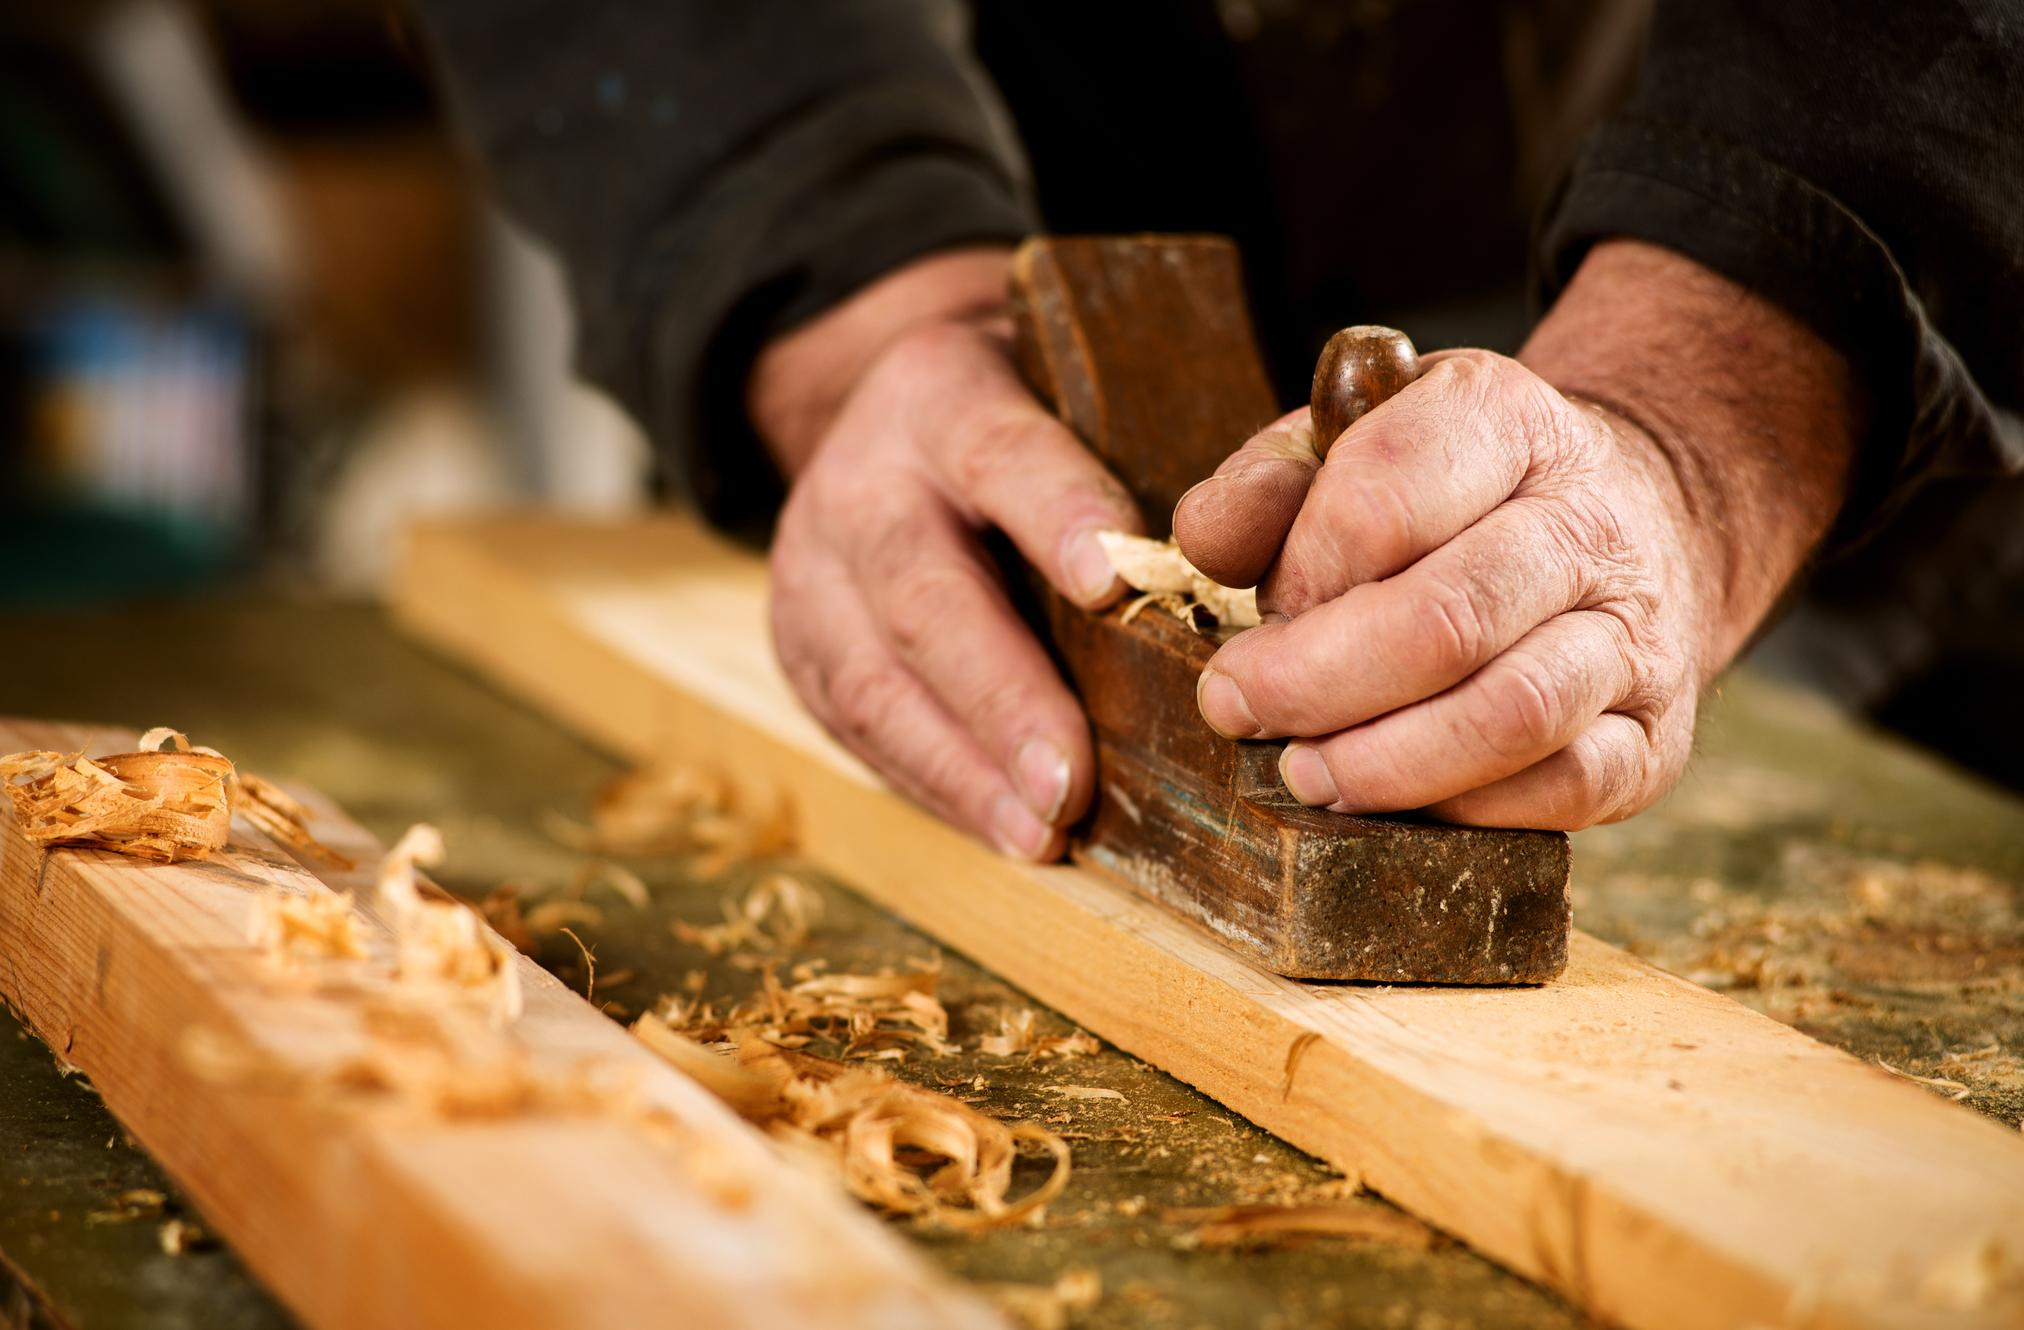 Carpenter using tools to smooth and level wood